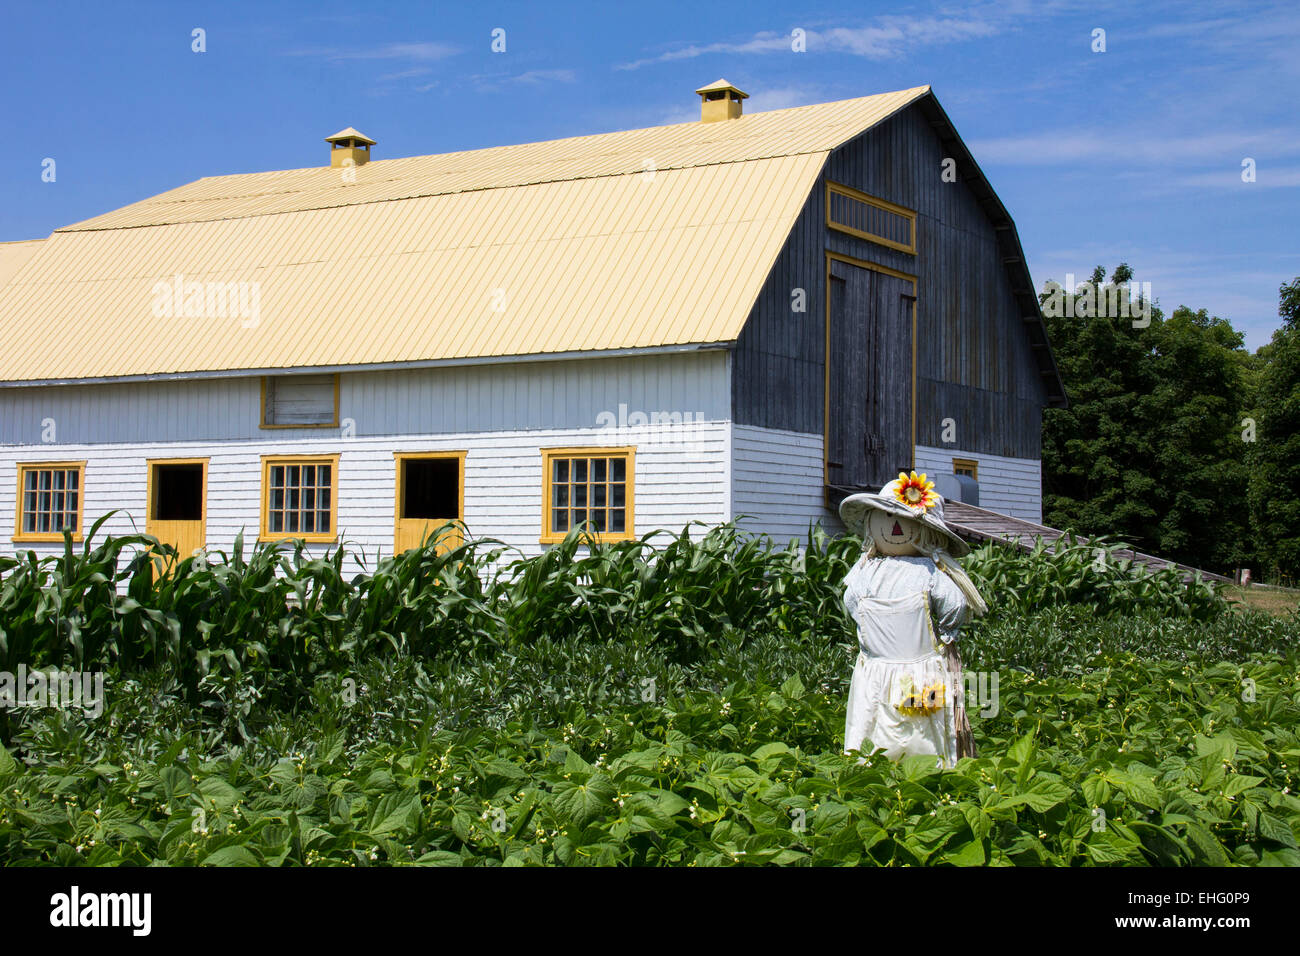 Farm scenes such as this one reflect the rural charm of Isle-aux-Coudres in the Charlevoix Region of Quebec. - Stock Image